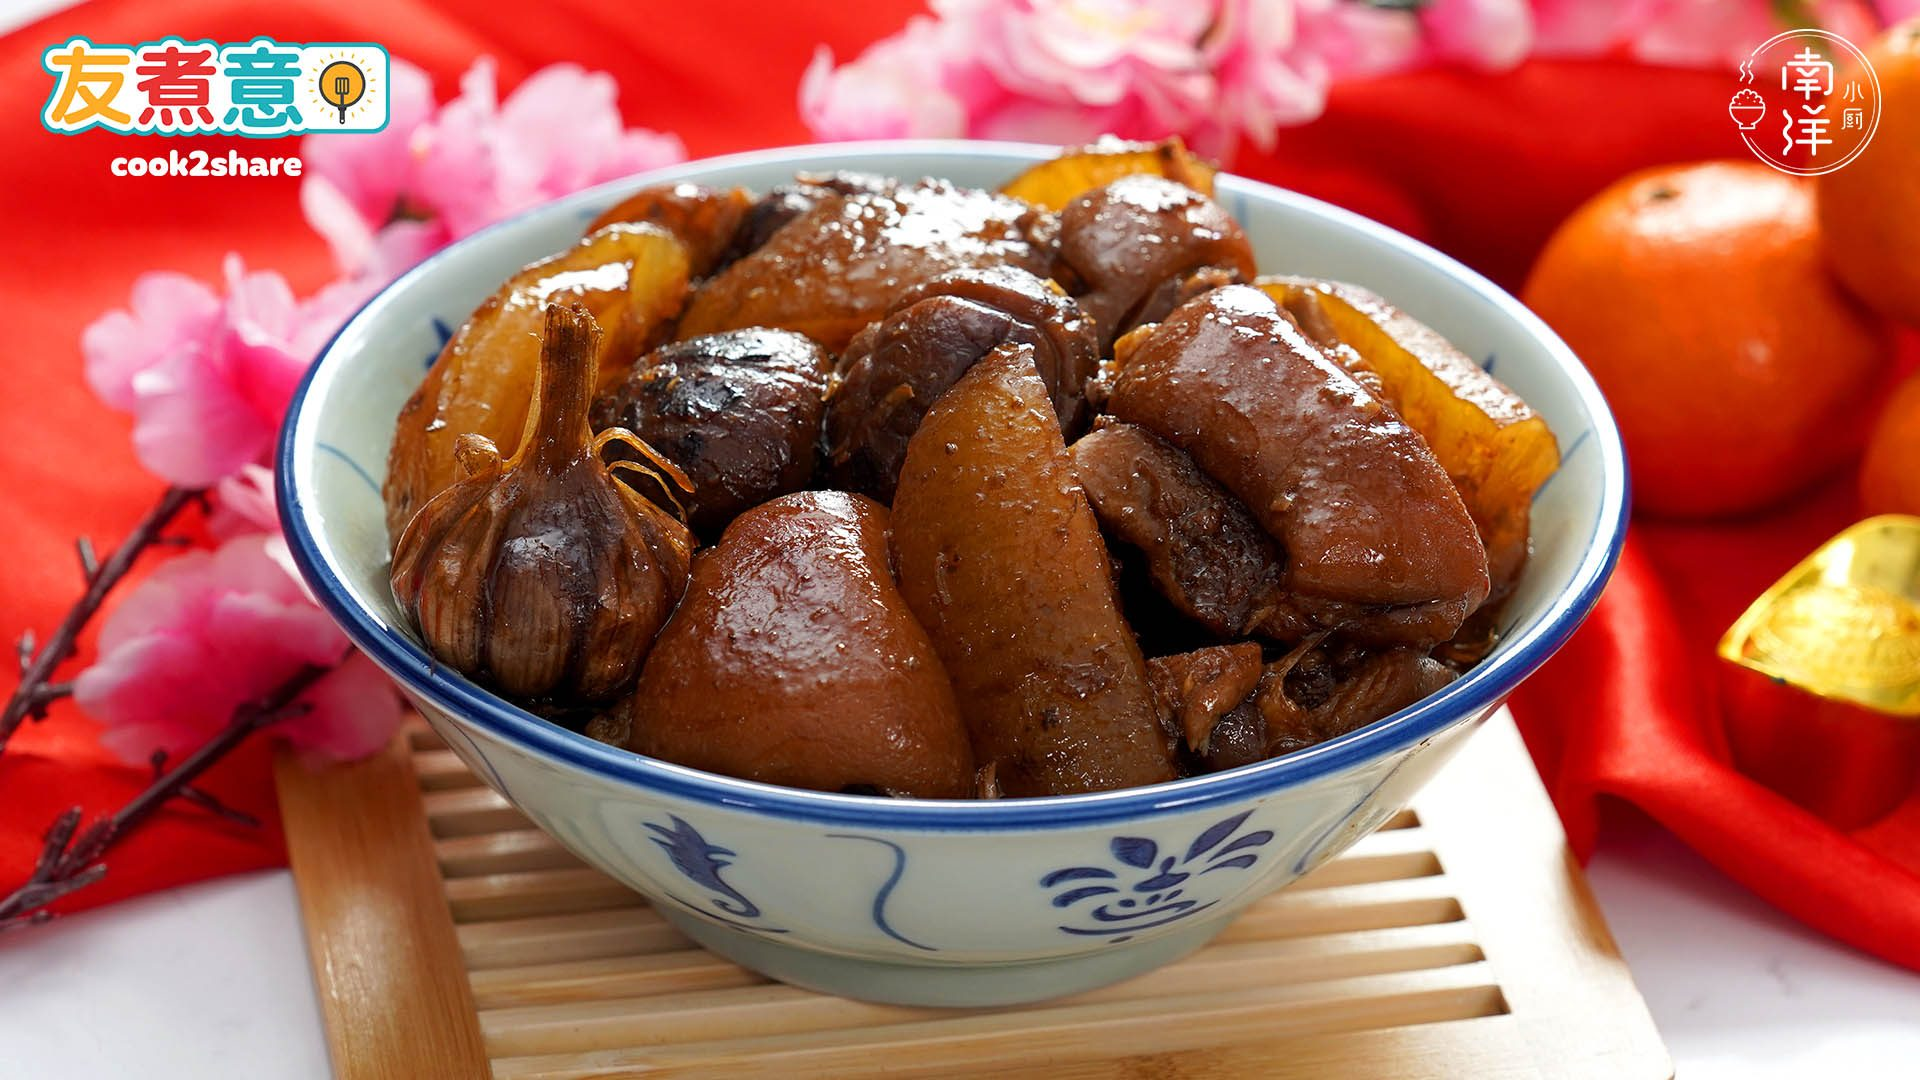 海参焖猪脚 Braised Pork Trotters with Sea Cucumber & Mushroom